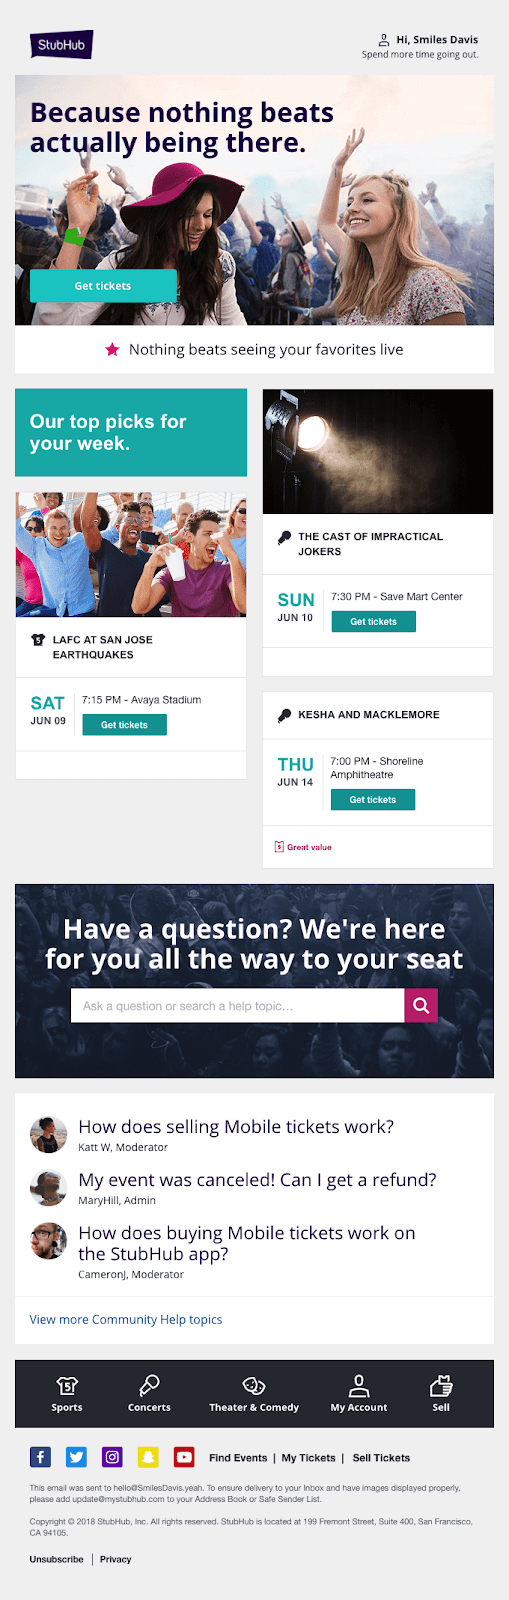 StubHub knows what users like and brings it to them